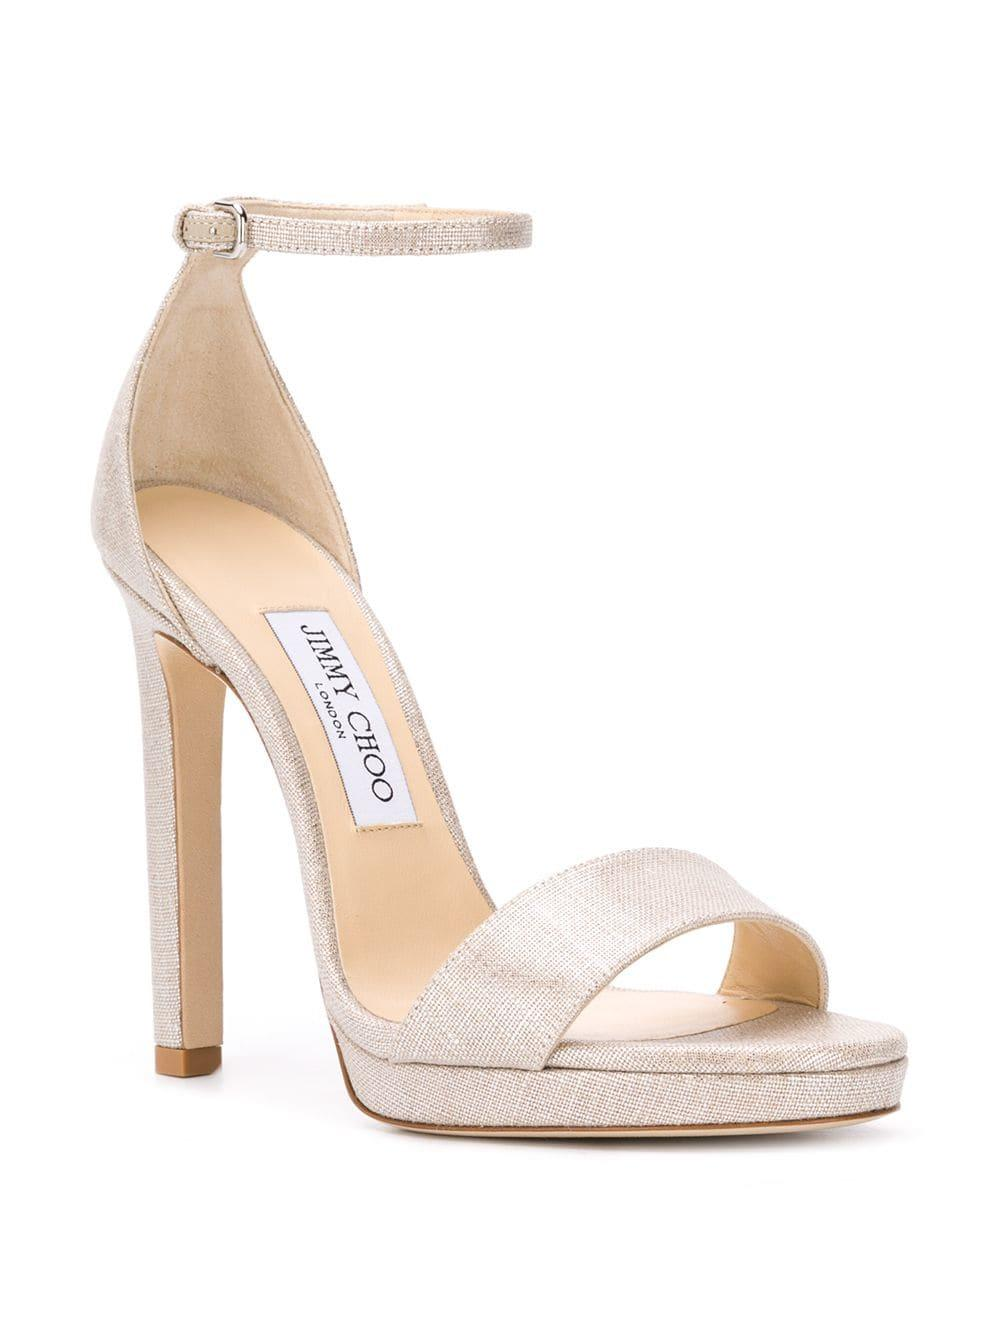 037987d0c08 Jimmy Choo Misty 120 Sandals in Metallic - Lyst